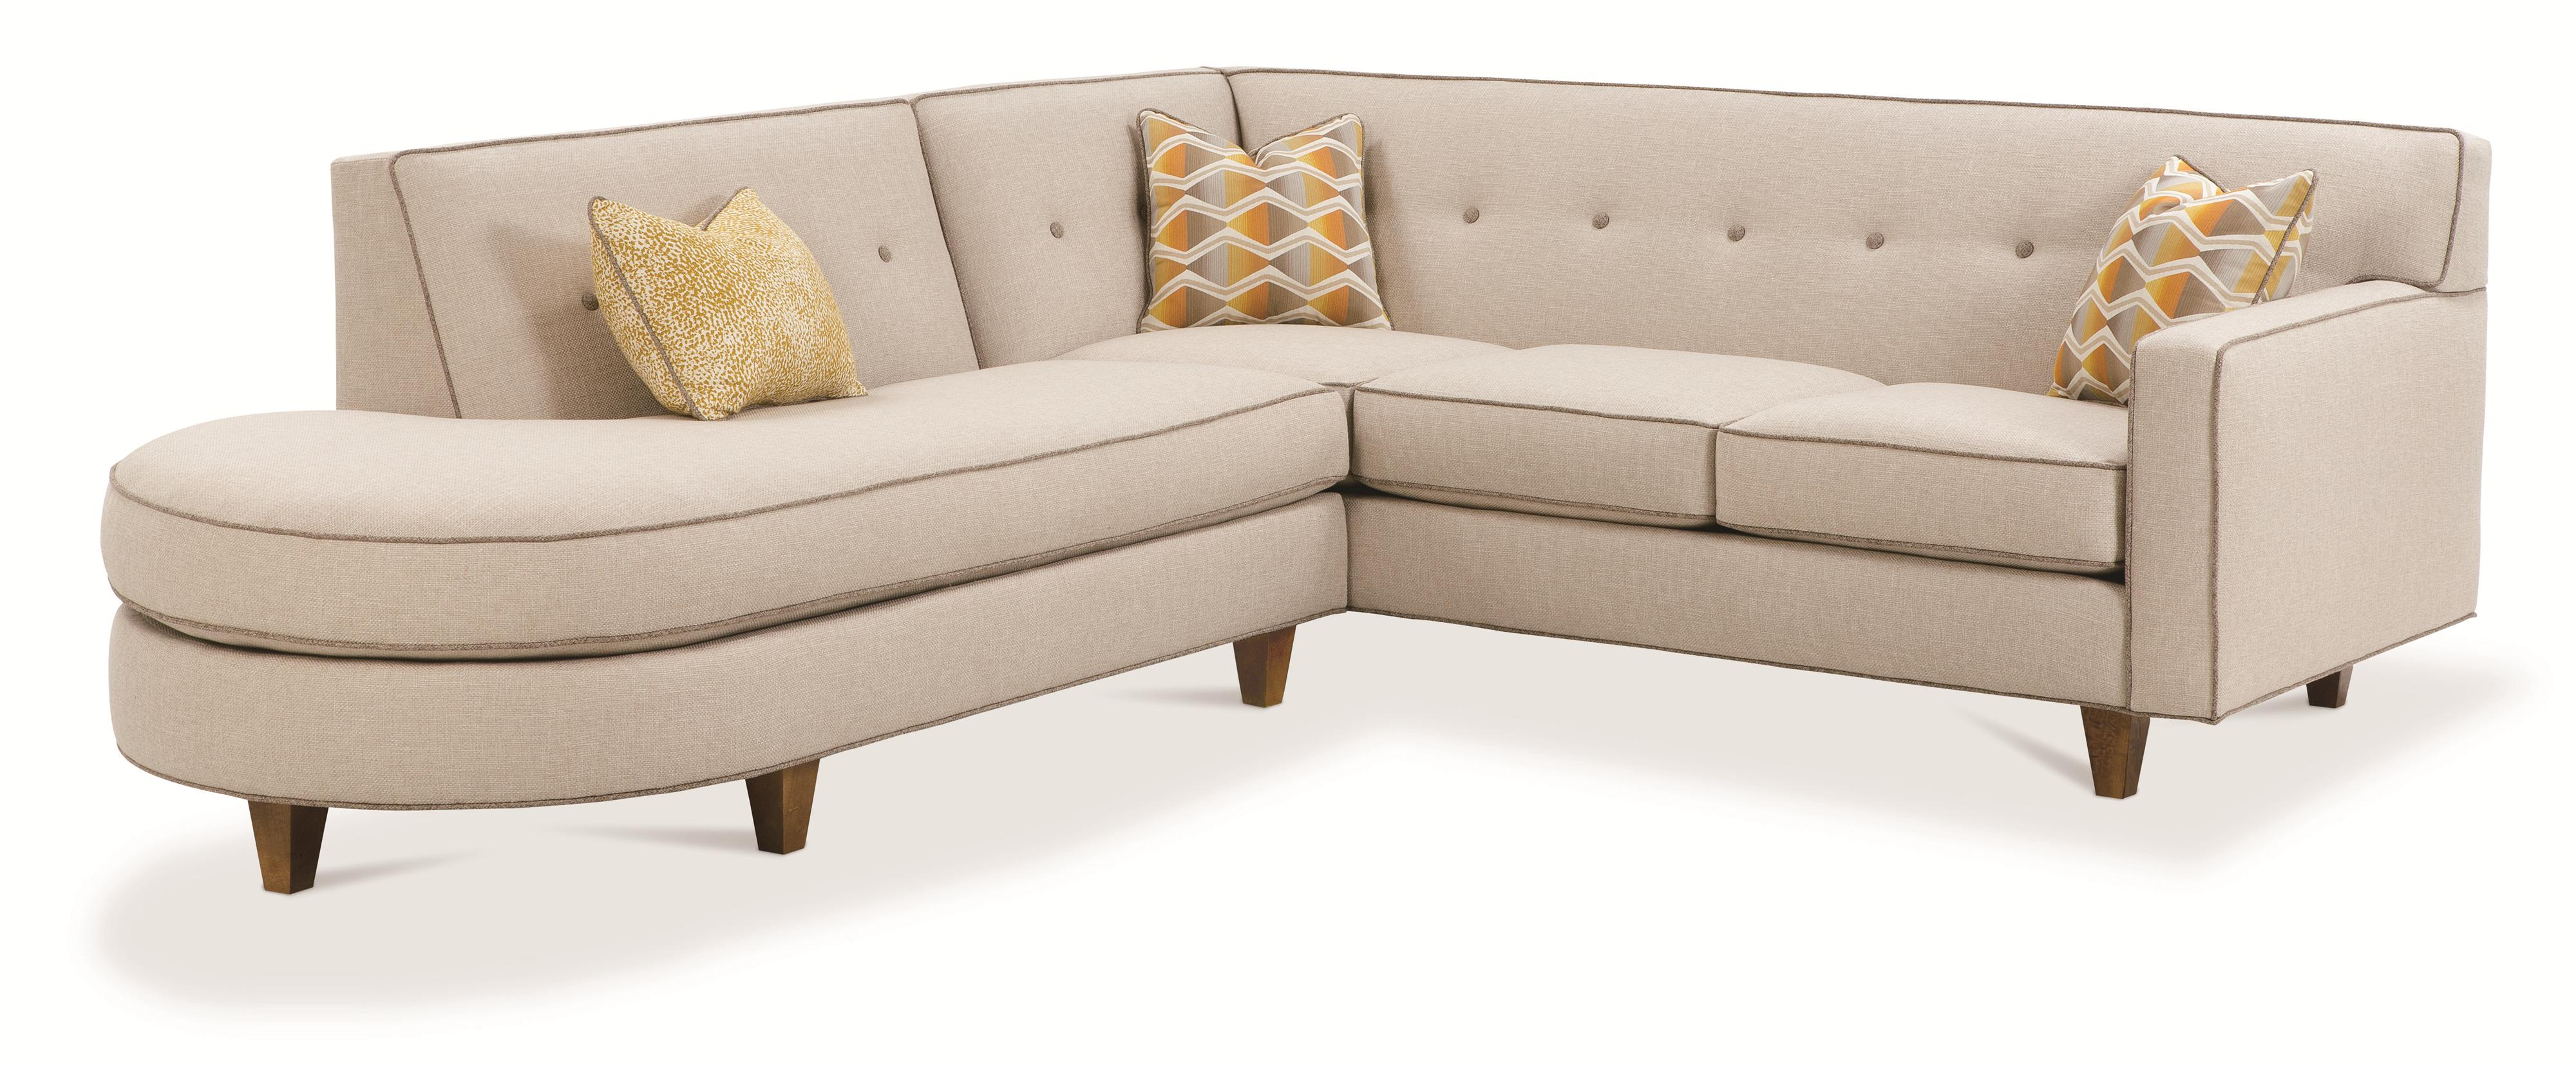 Rowe Dorset Contemporary 2 Piece Sectional Sofa with Tufted Back - AHFA - Sofa Sectional Dealer Locator  sc 1 st  Furniture Dealer Locator - Find your furniture : rowe furniture sectional - Sectionals, Sofas & Couches